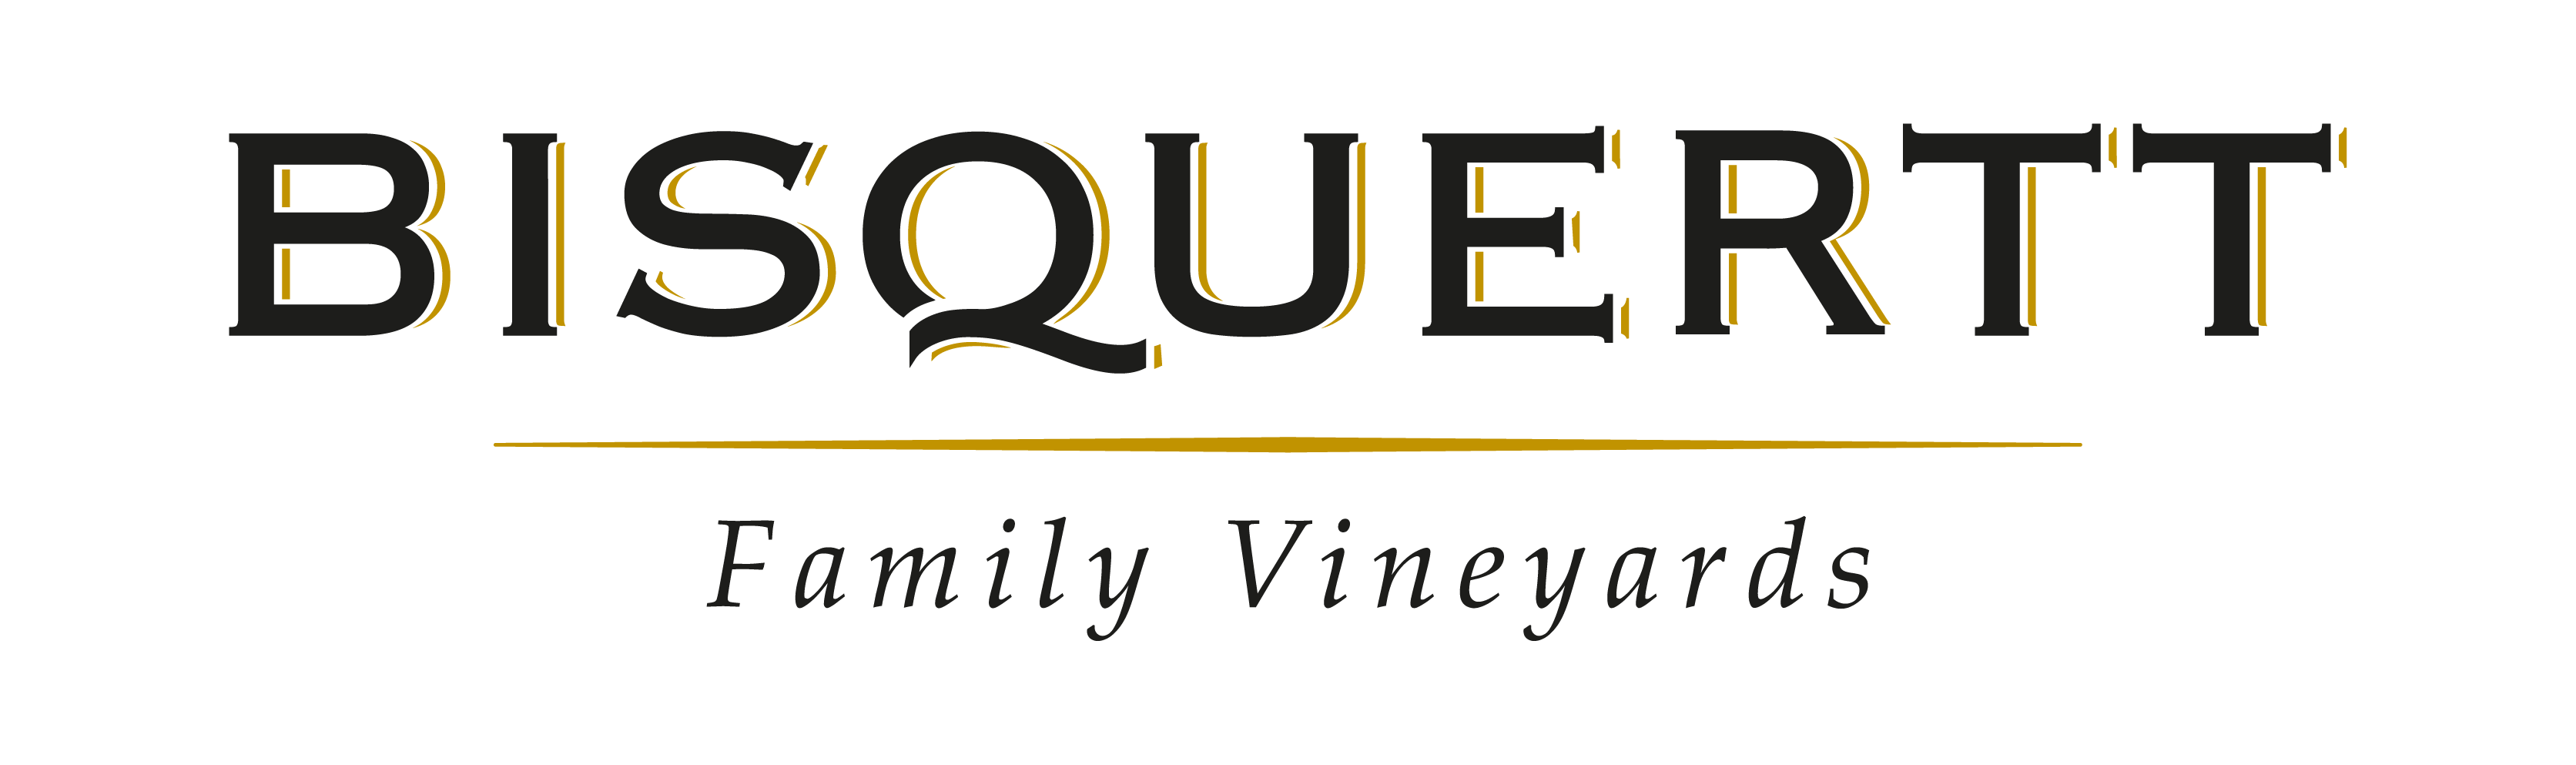 Bisquertt - Family Vineyards